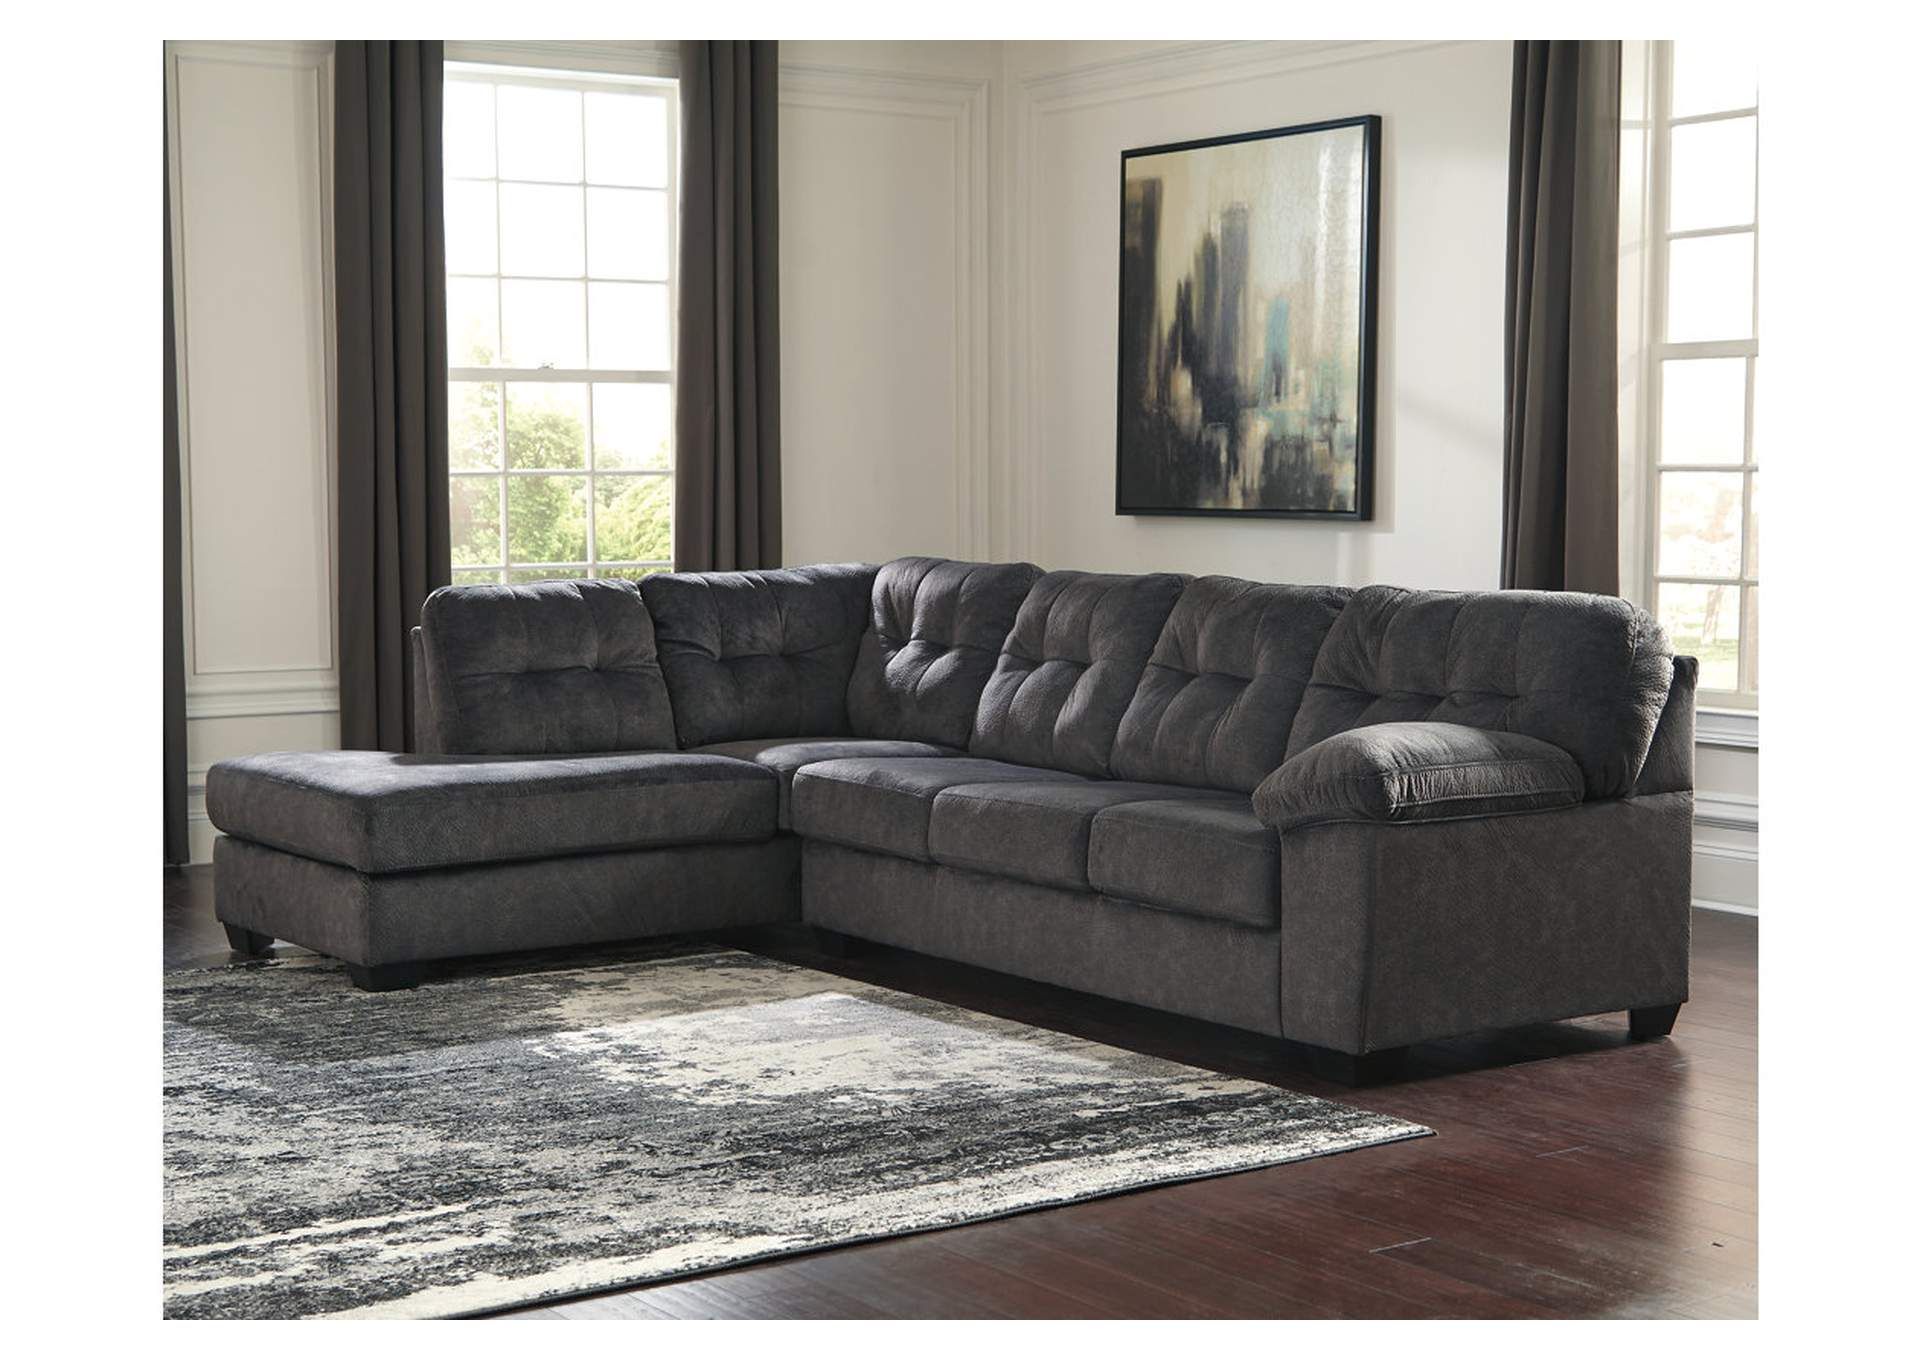 Accrington Granite LAF Chaise End Sectional,Signature Design By Ashley